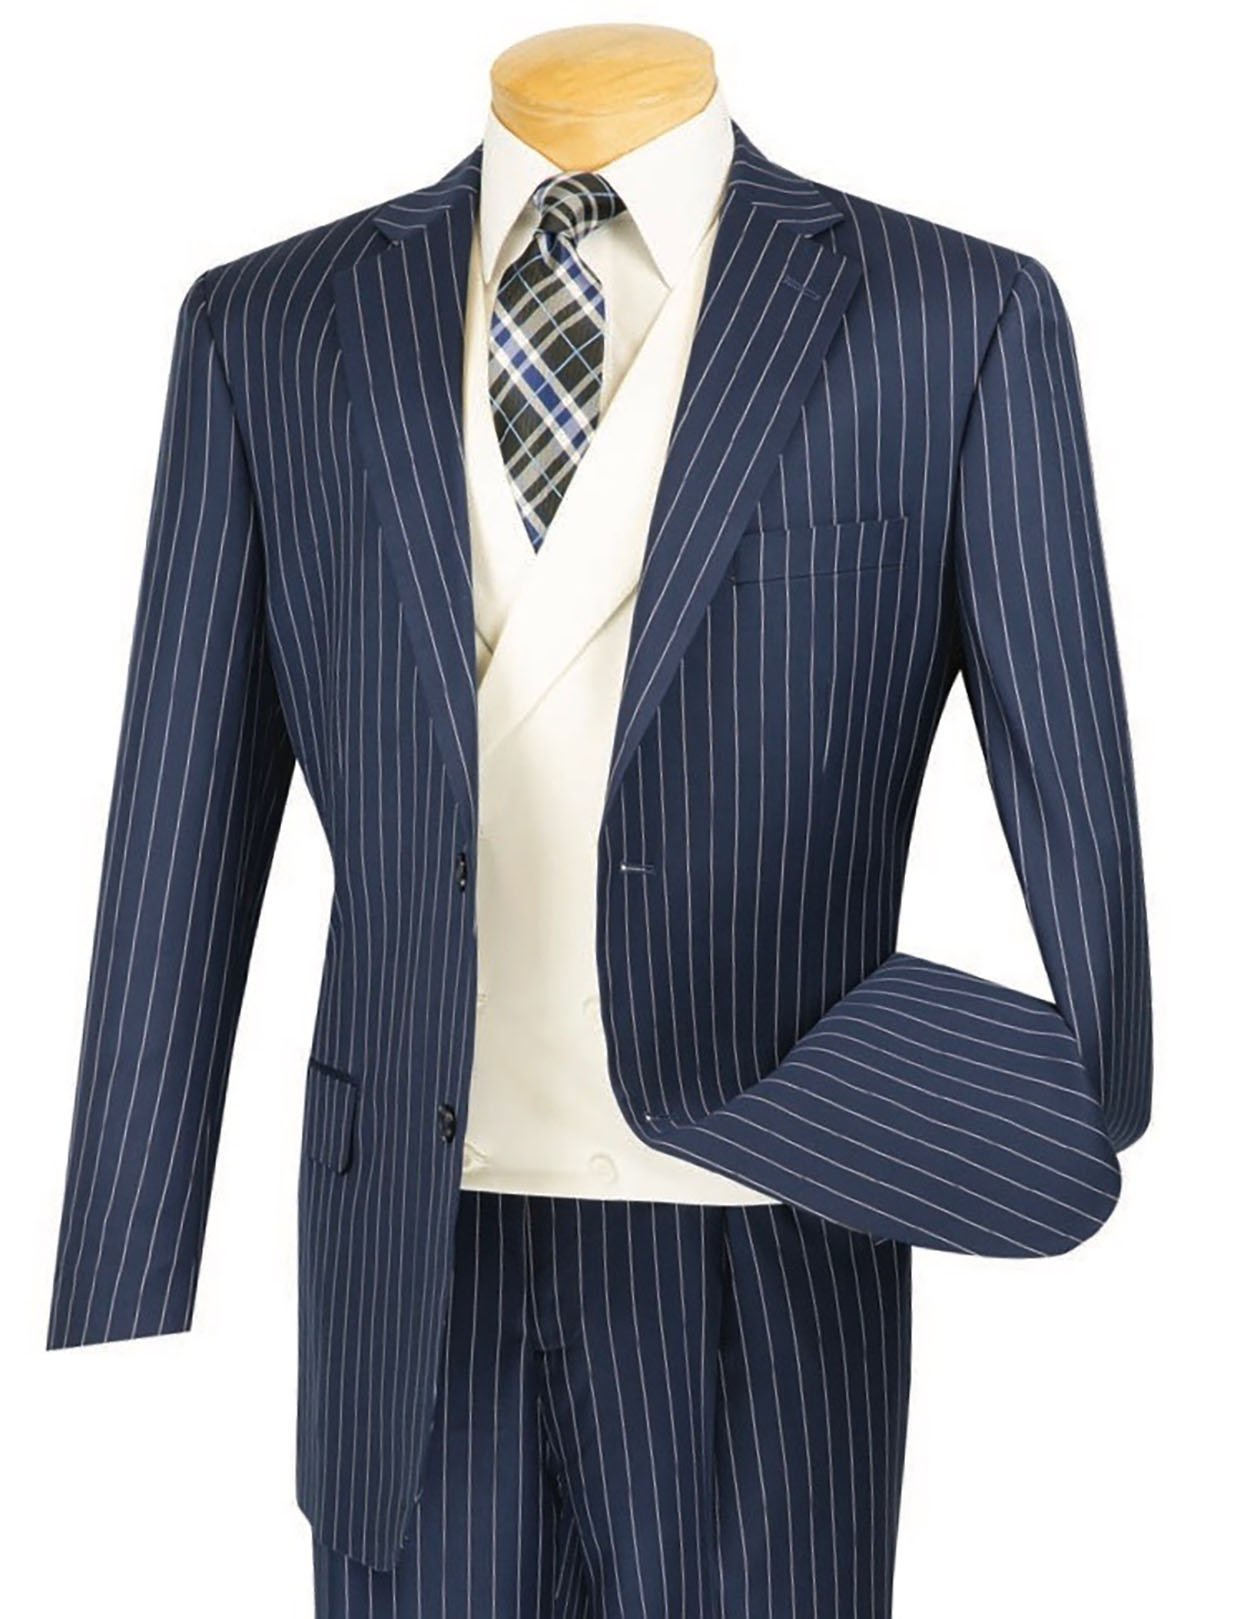 VINCI Men's Gangster Pinstriped 3pc 2 Button Classic-Fit Suit w/White Double Breasted Vest New [Color Navy Blue | Size: 40 Regular/34 Waist]